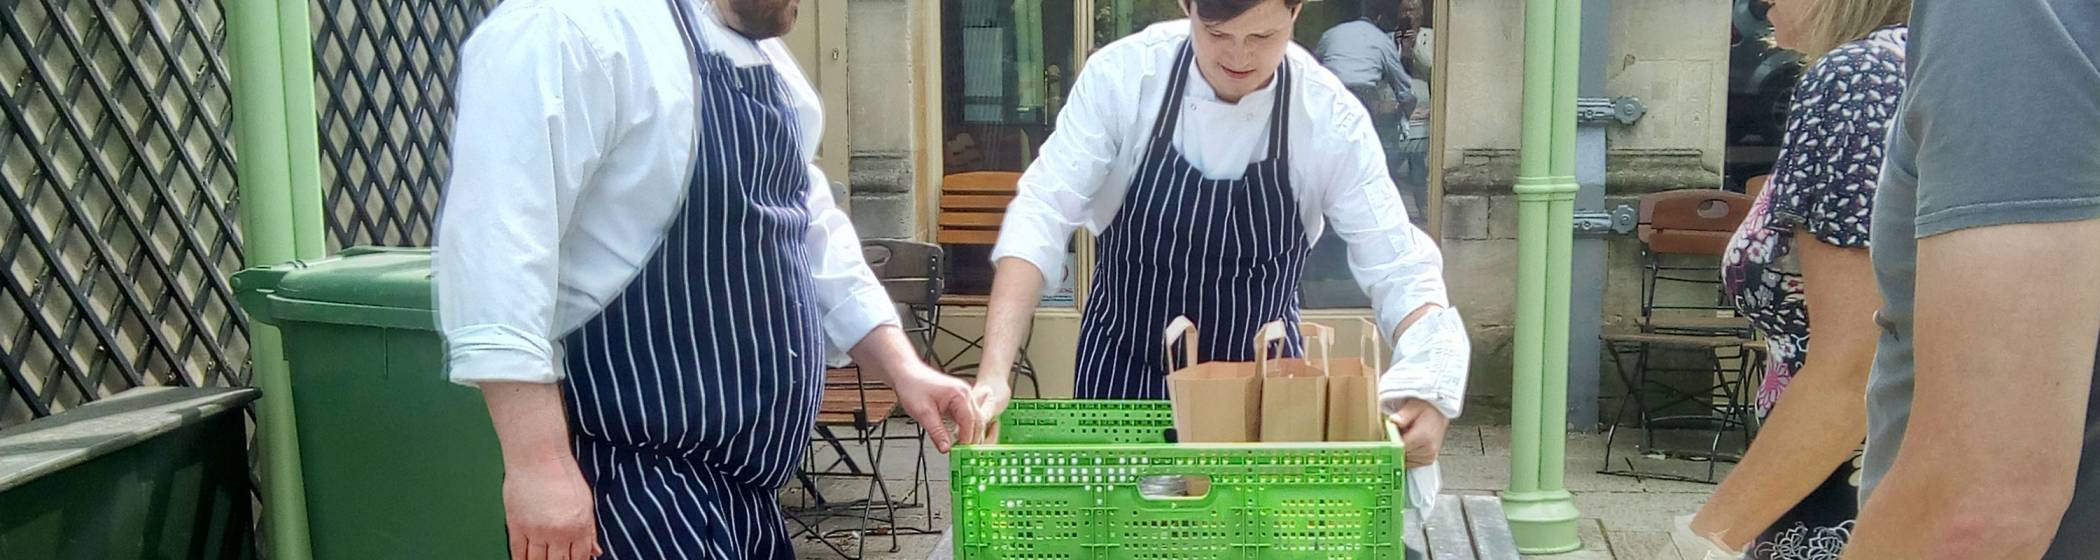 Waddesdon chefs packing up food ready for delivery